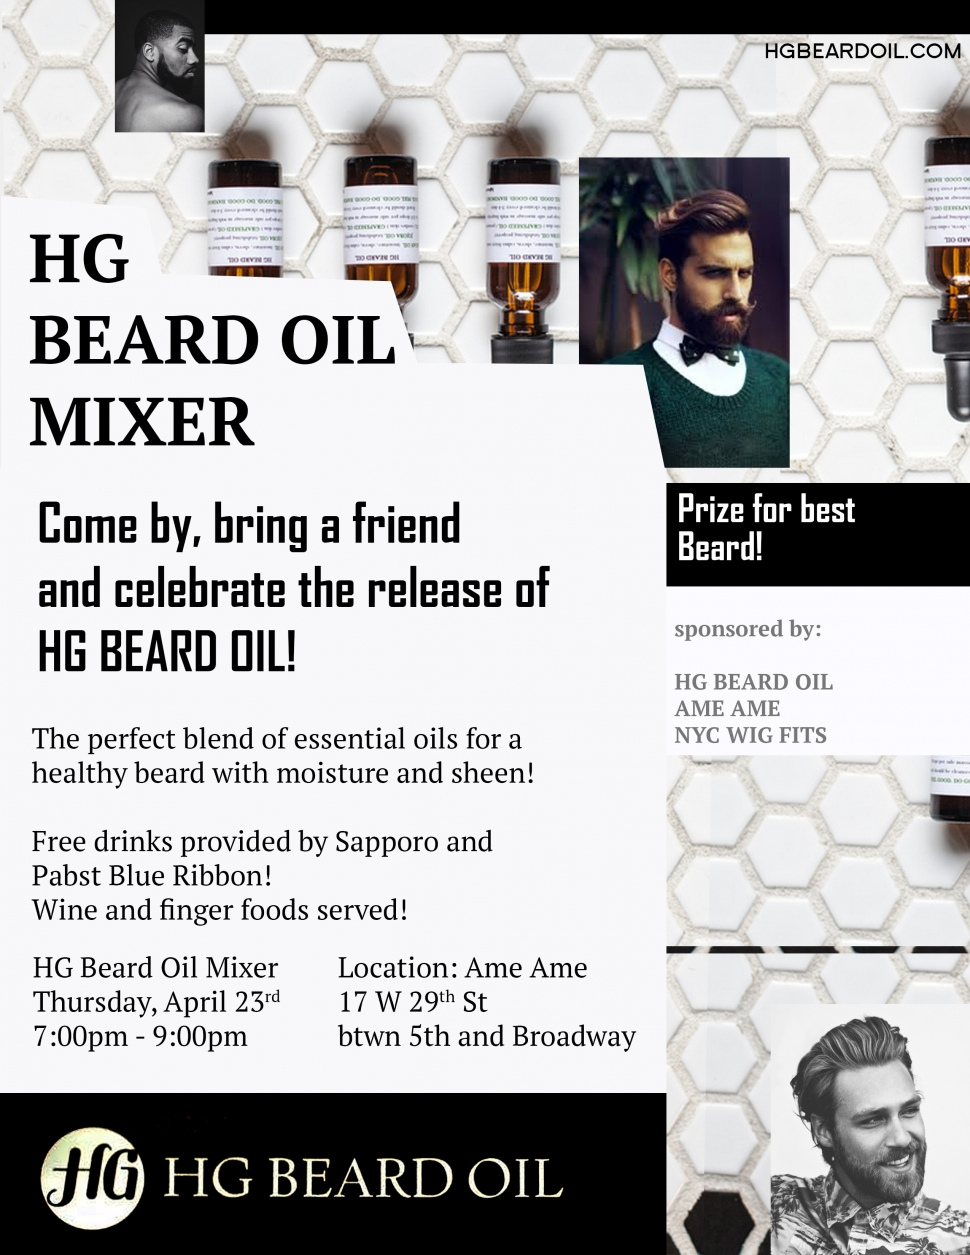 Launch Party for HG Beard Oil!